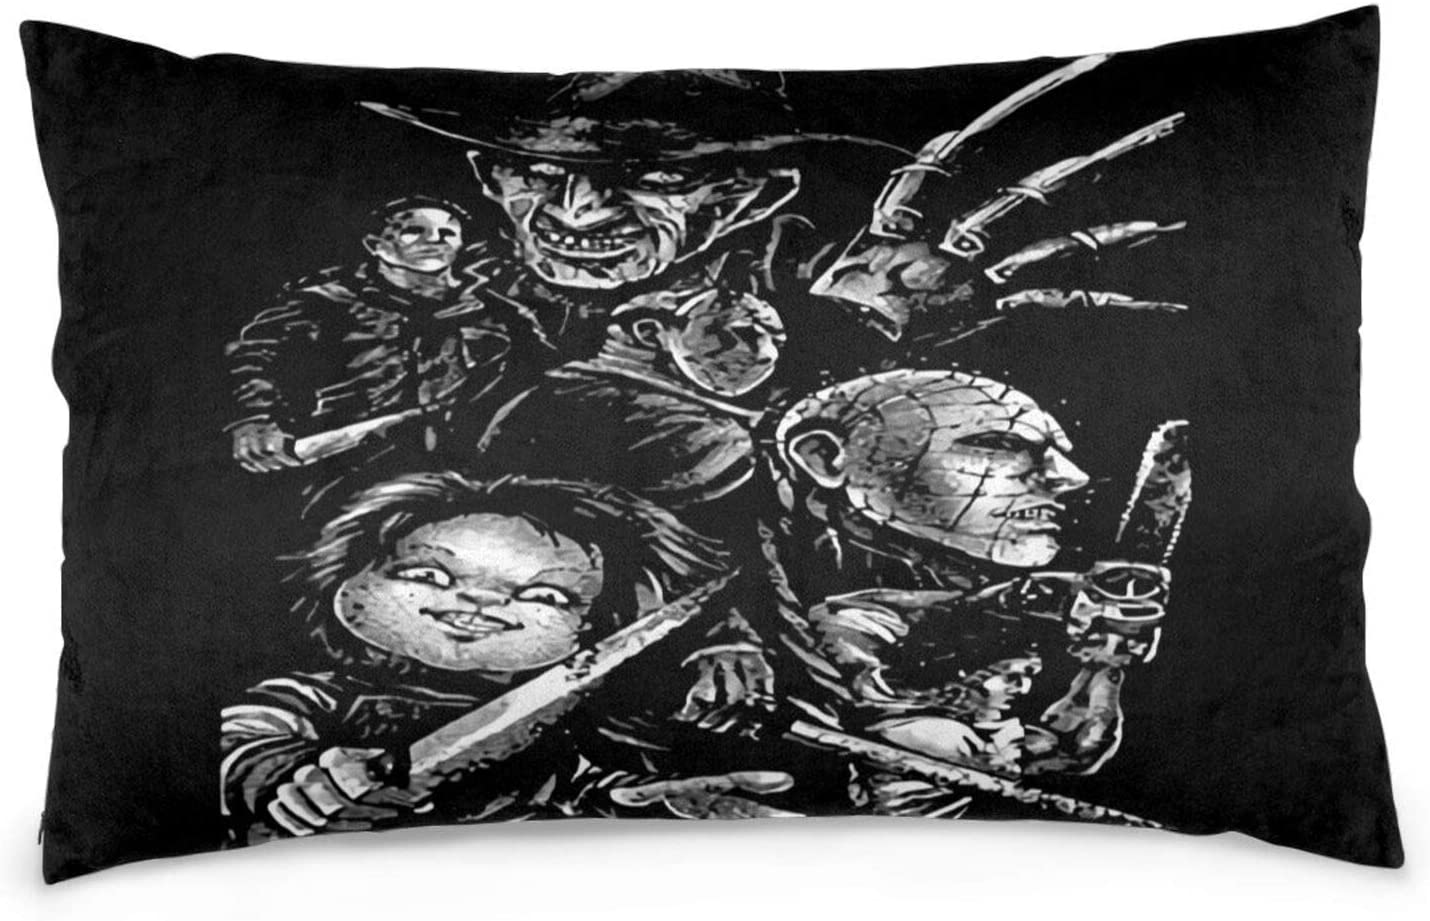 Dawiine Pennywise Michael Myers Halloween Decor Pillowcases Pillow Protectors Pillow Cases Bedroom Home Car Decor